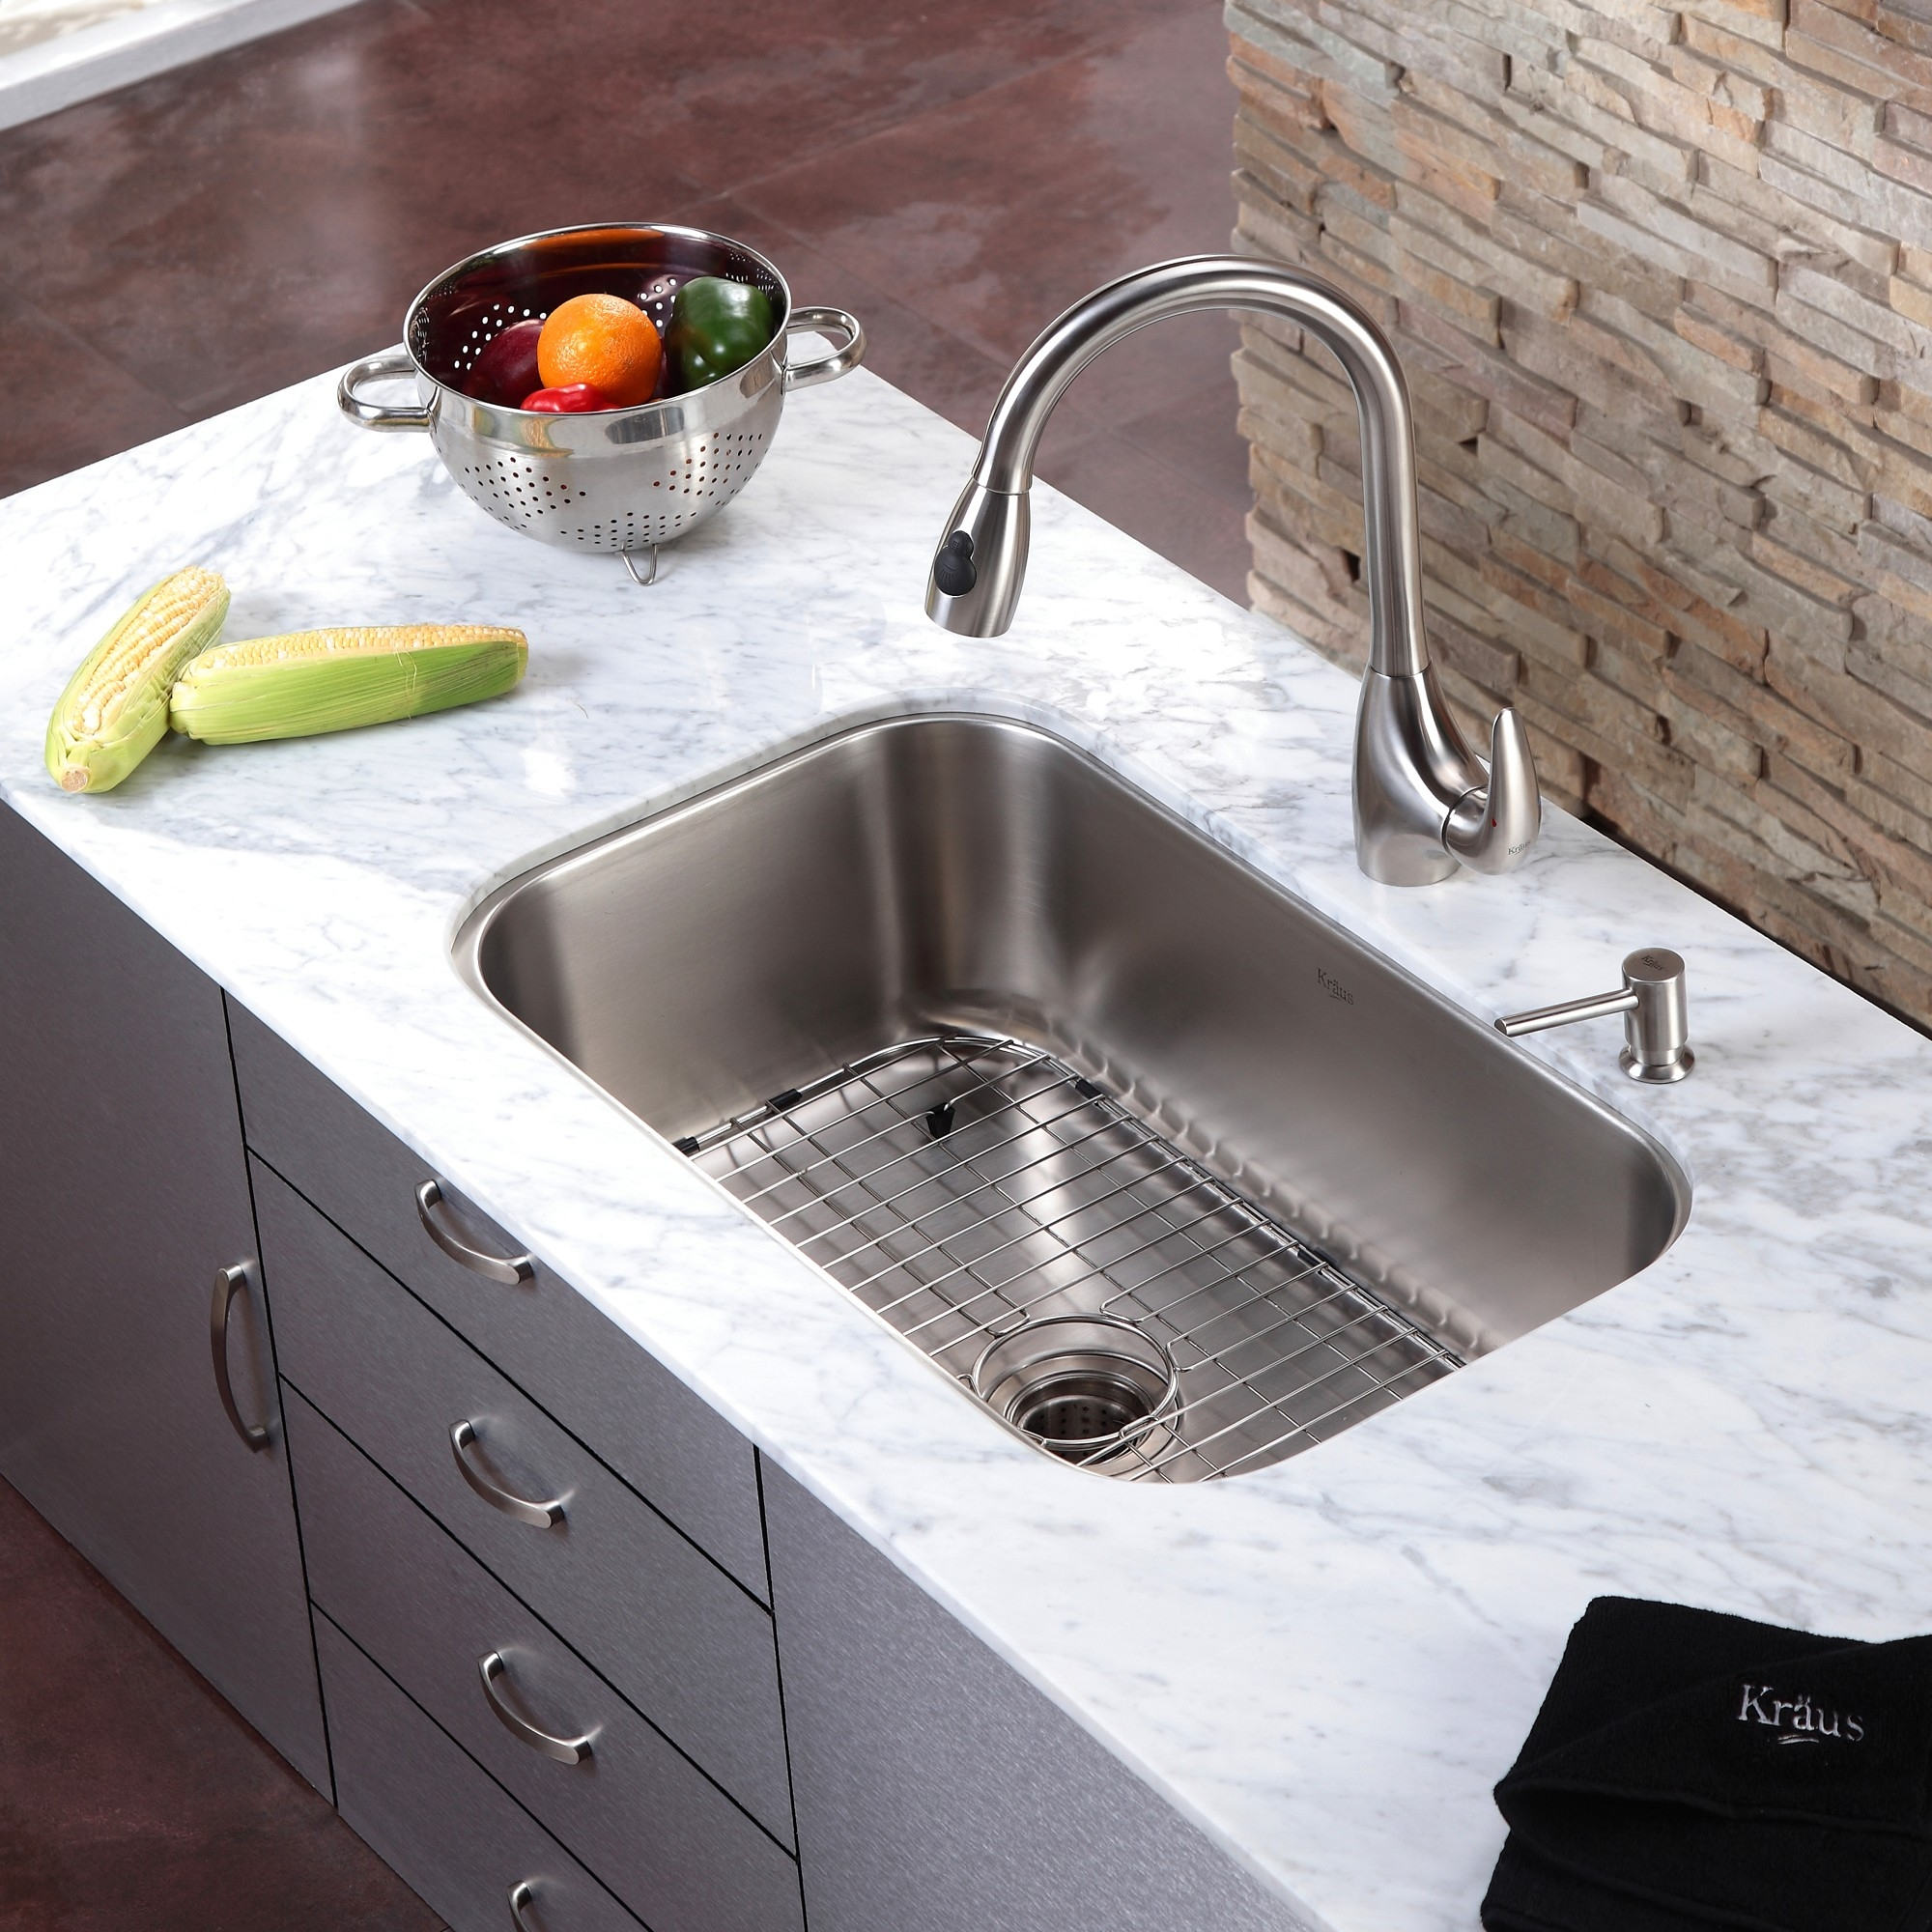 Ideas, one kitchen sink with two faucets one kitchen sink with two faucets the single bowl kitchen sink nashuahistory 2000 x 2000  .